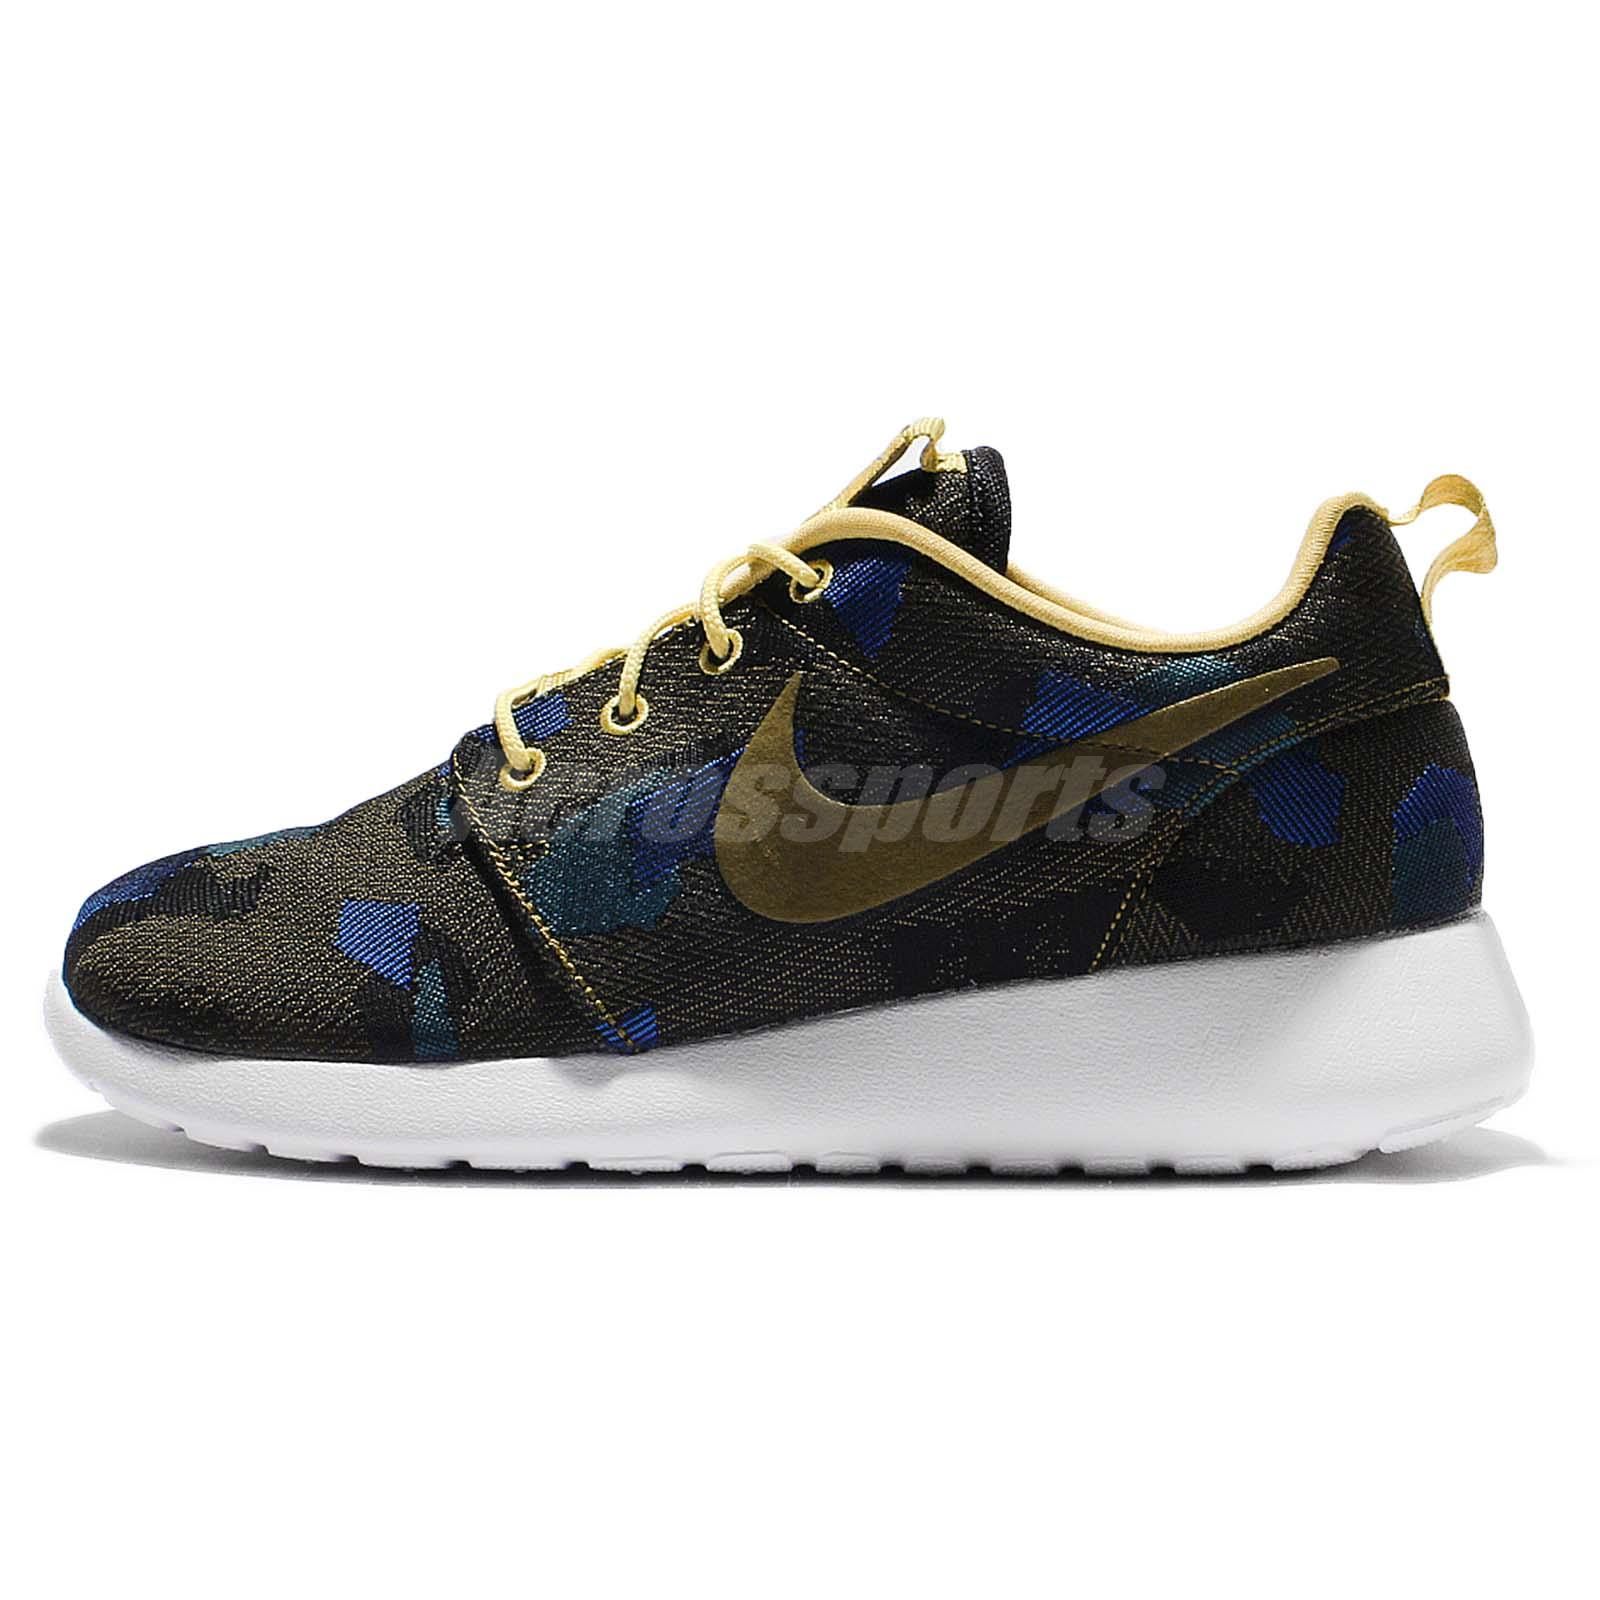 Nike Women S Roshe Run Camo Pictures to pin on Pinterest